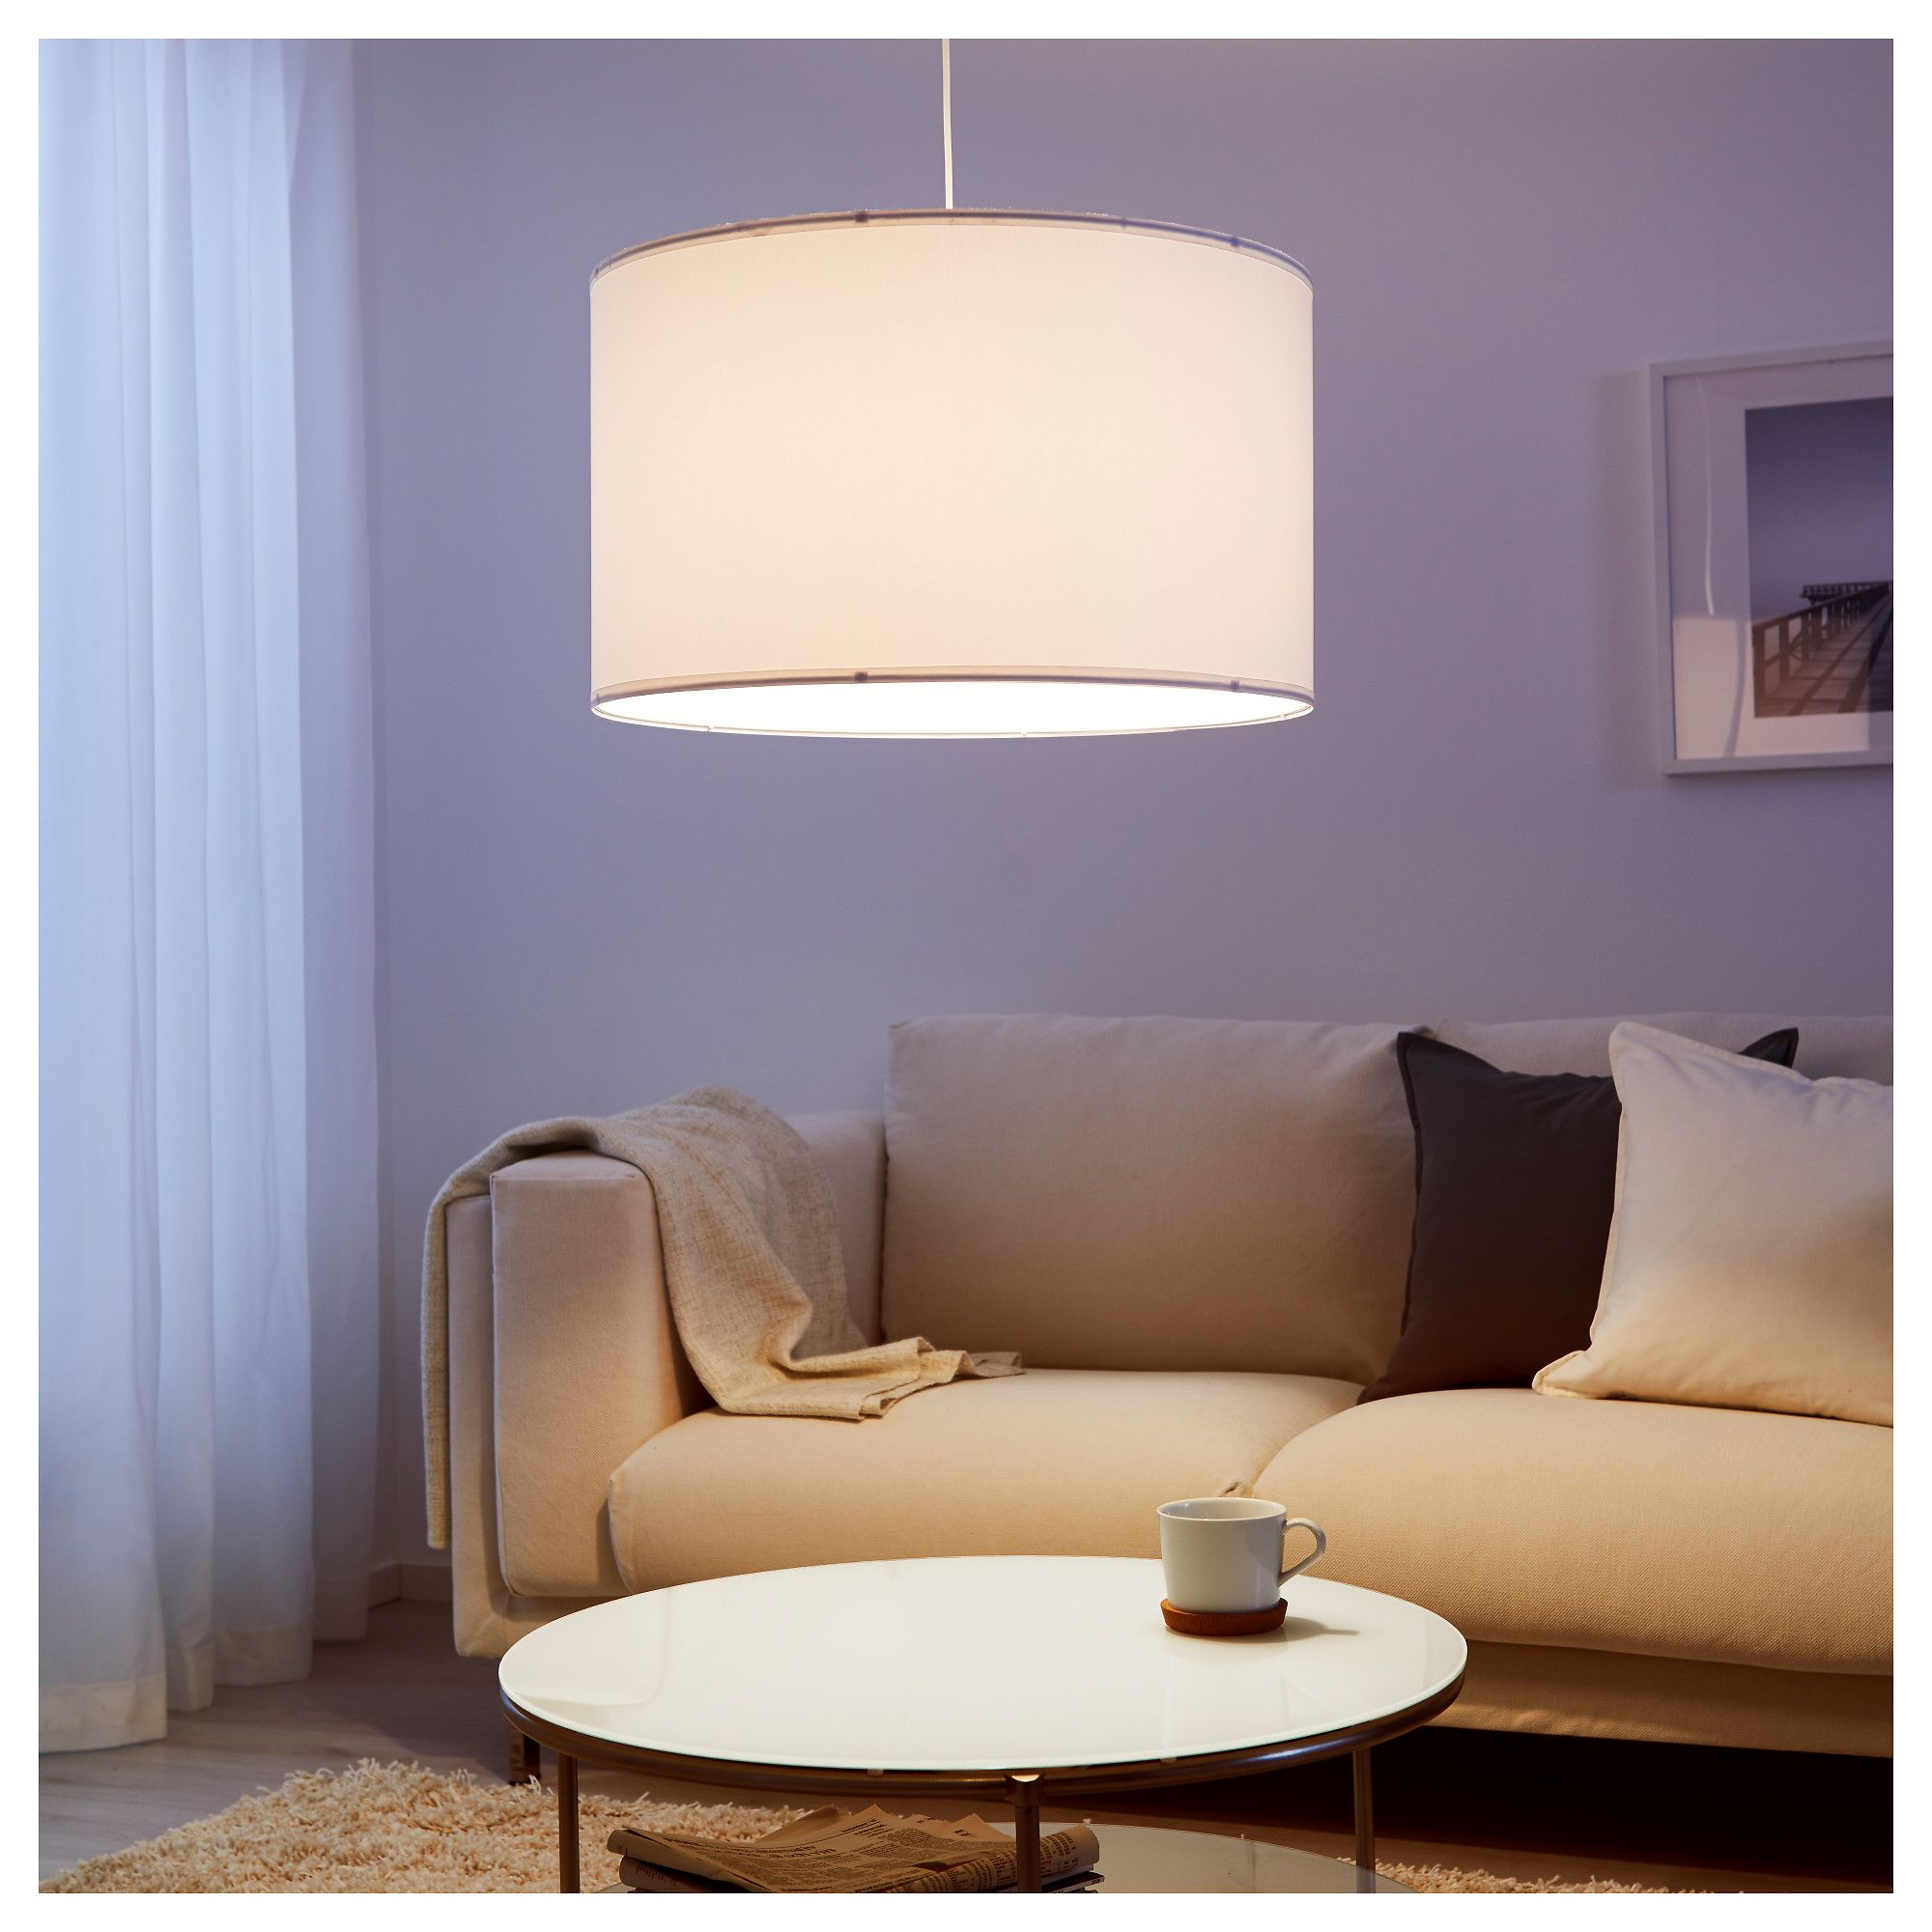 Ikea nym lamp shade z pinterest ceiling light shades lamp shades and ceiling light shades aloadofball Choice Image